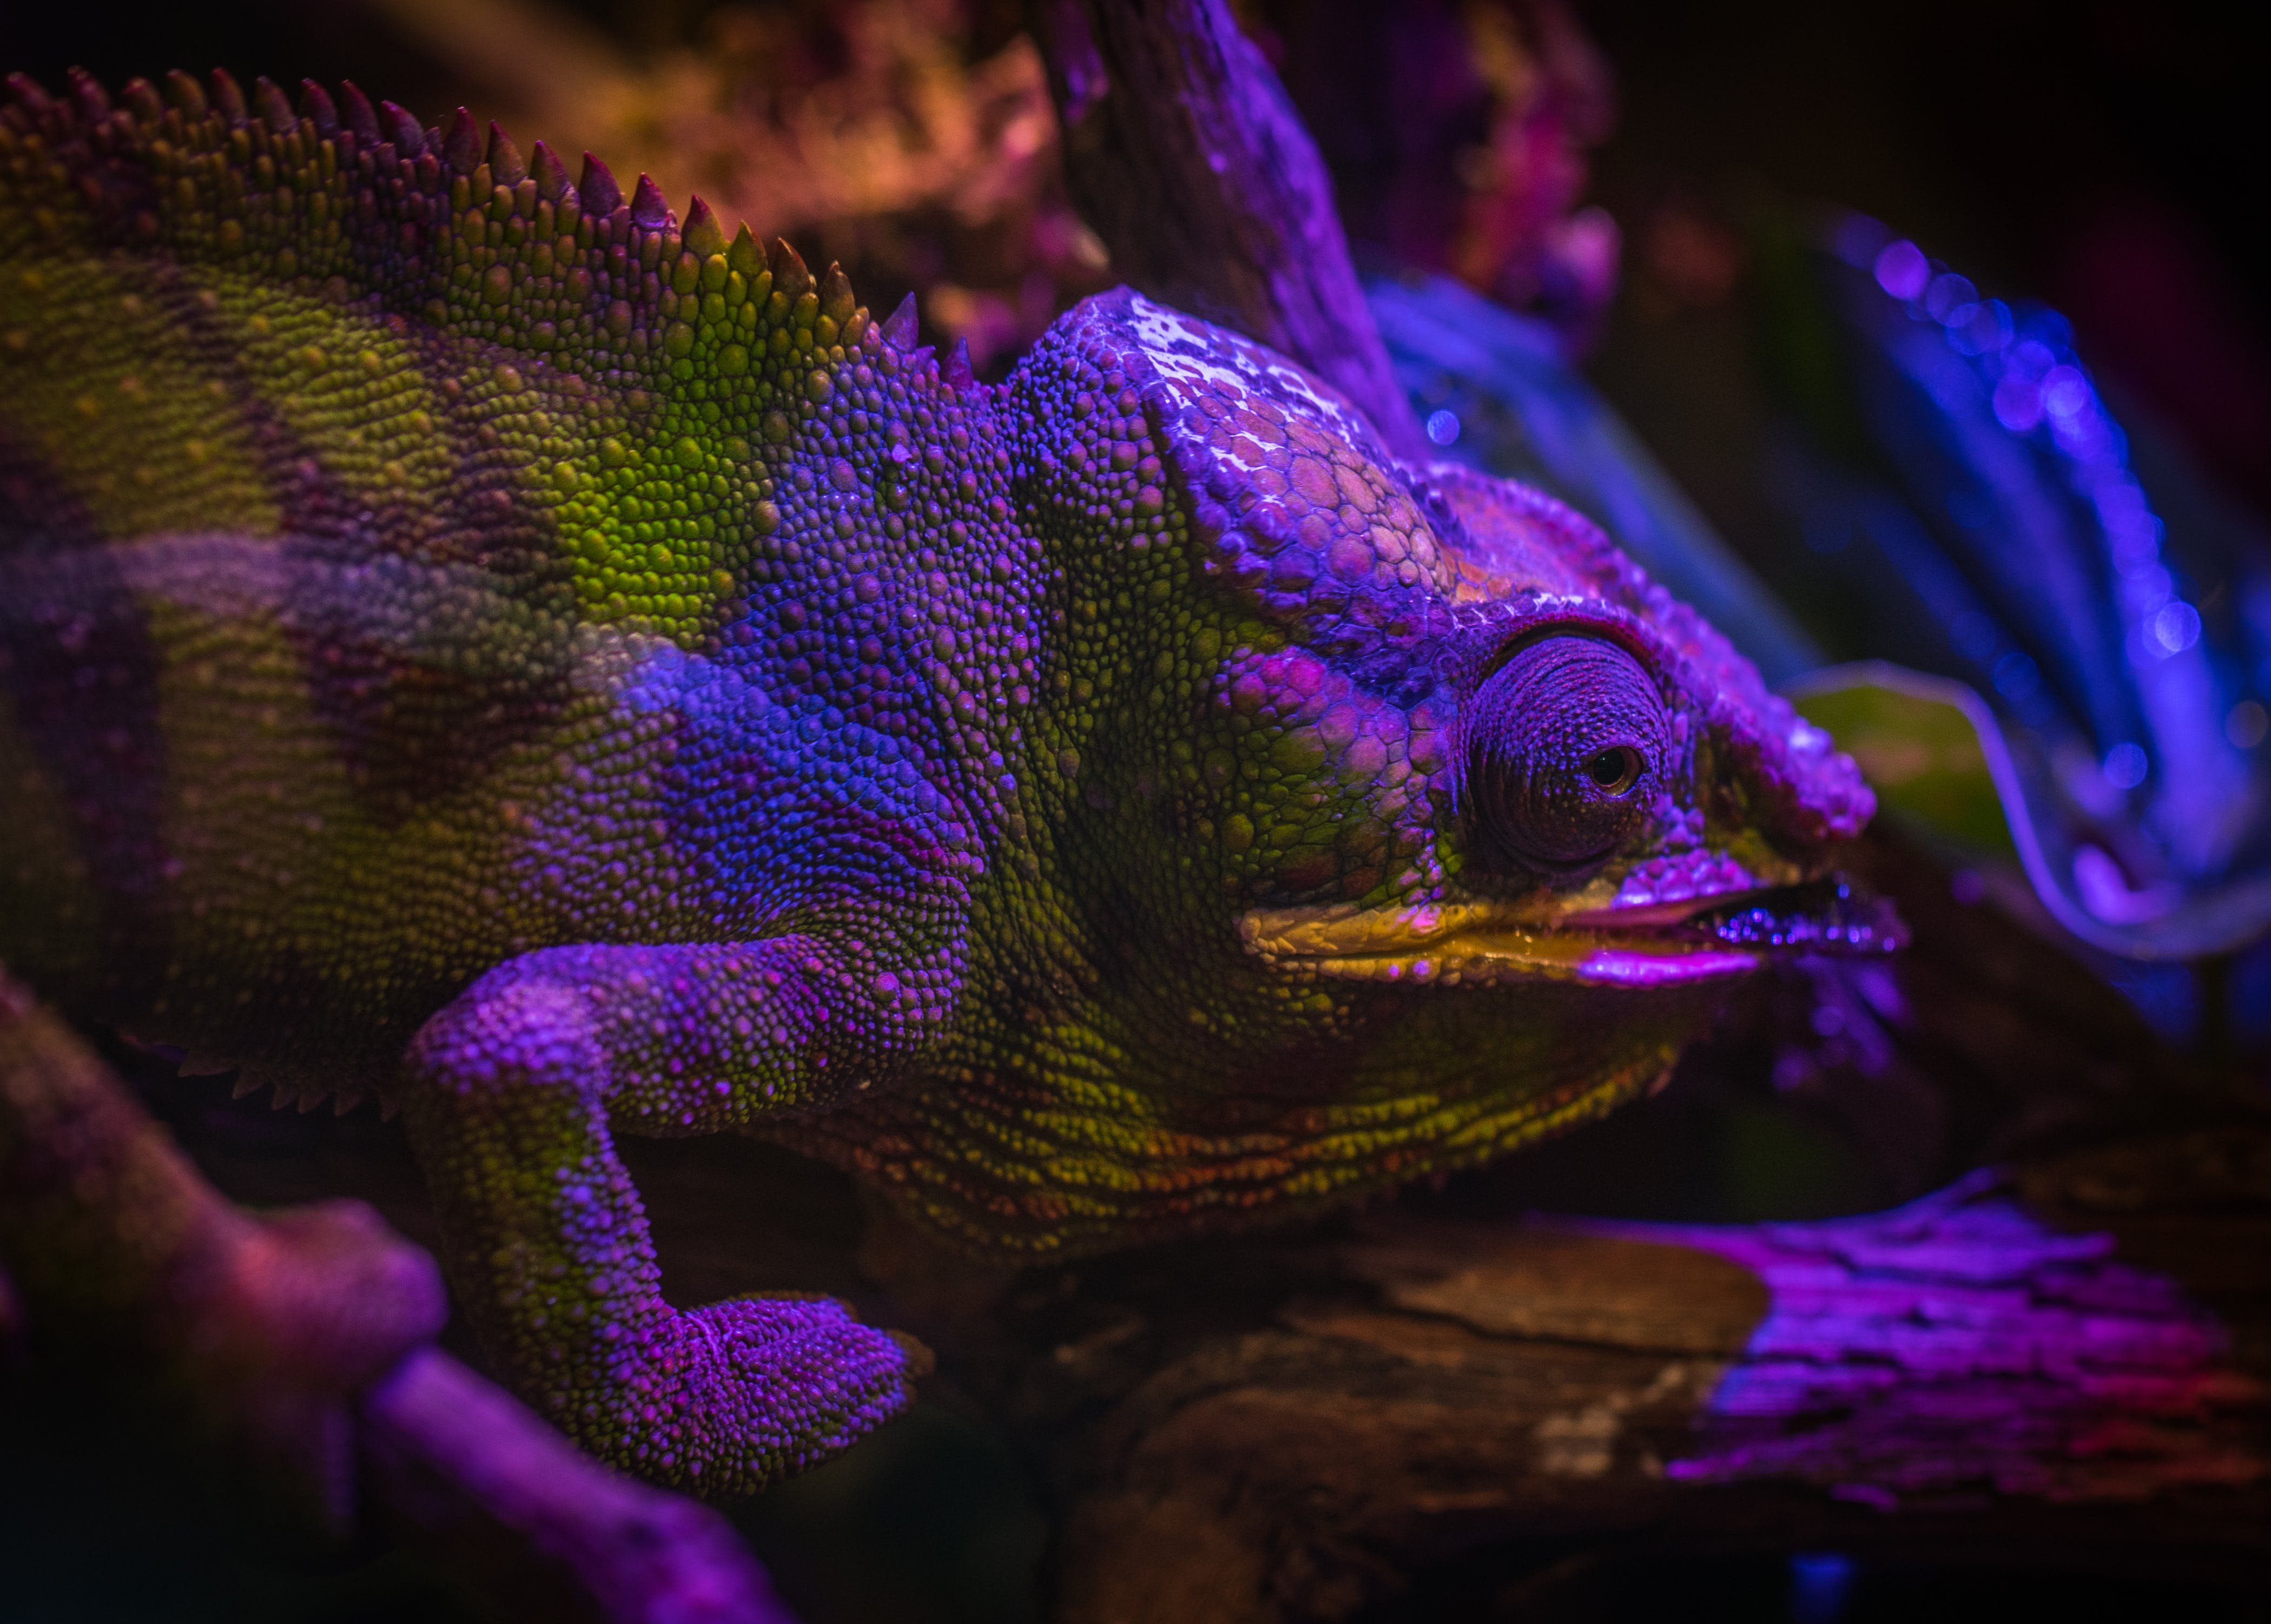 Green and Purple Chameleon